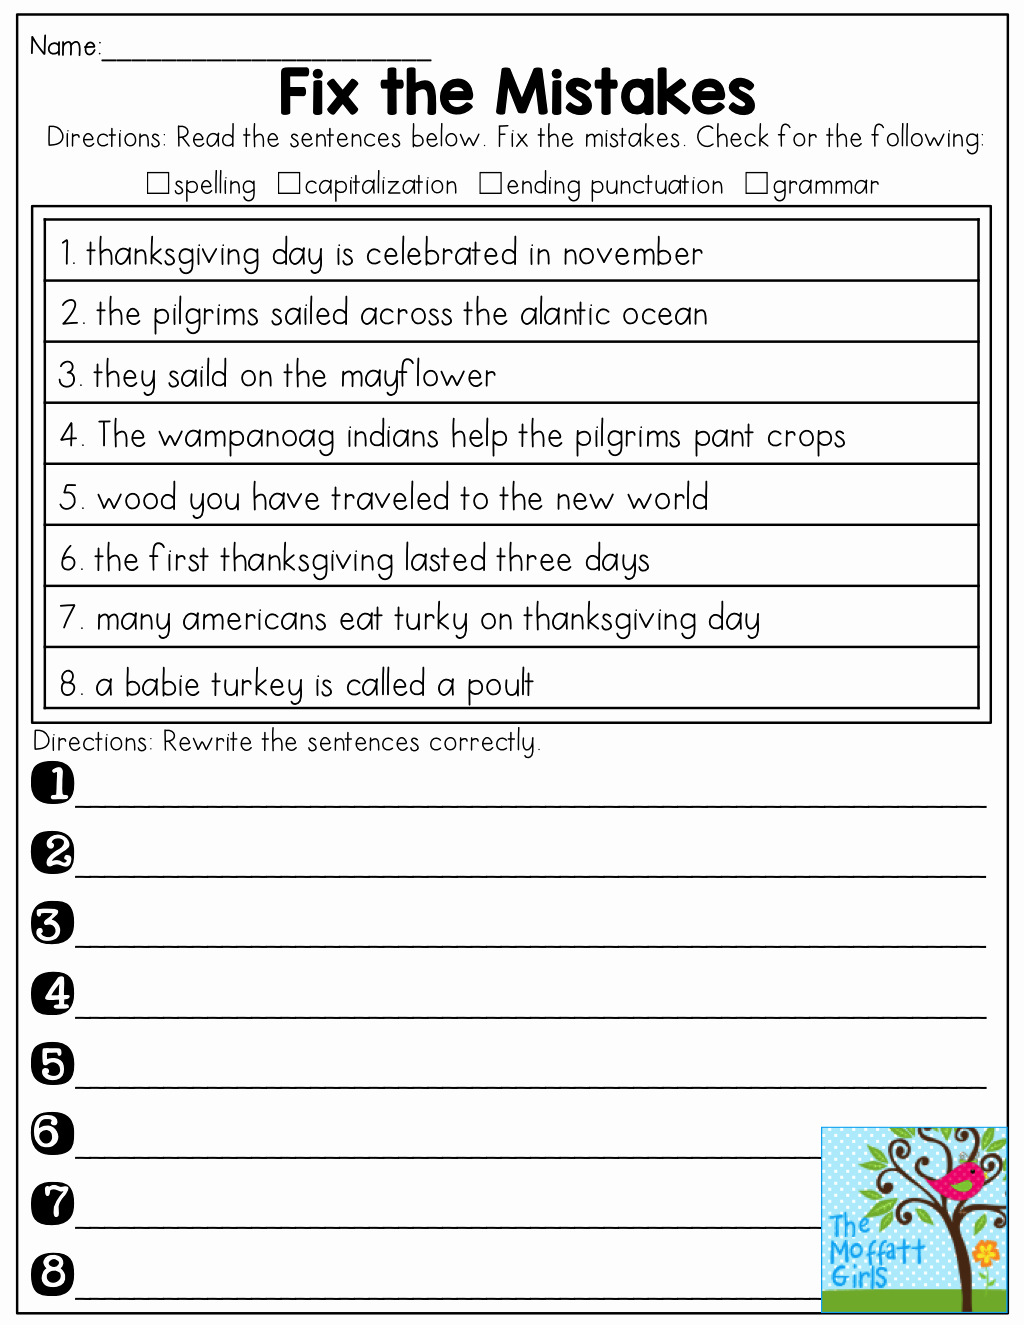 Grammatical Error Worksheets Beautiful Fix the Mistakes In the Sentences See How Many Mistakes